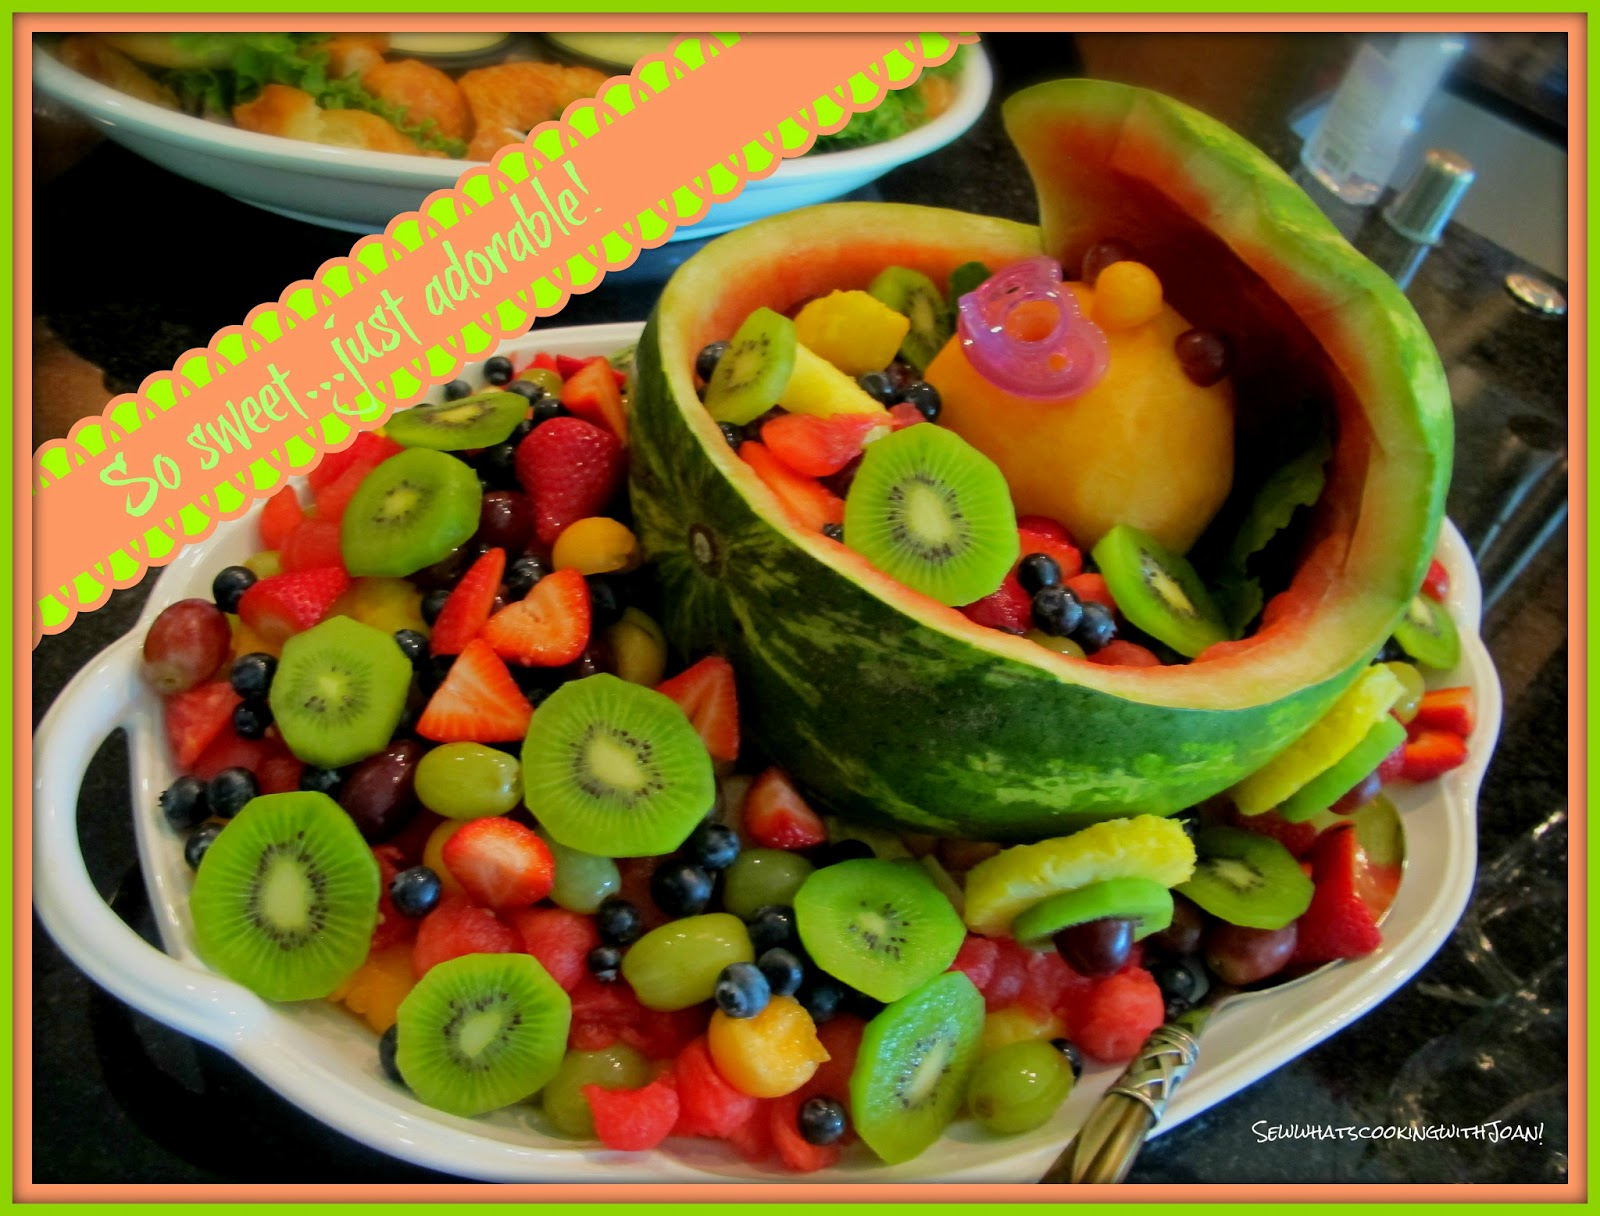 Sew what s cooking with Joan How to carve a watermelon baby